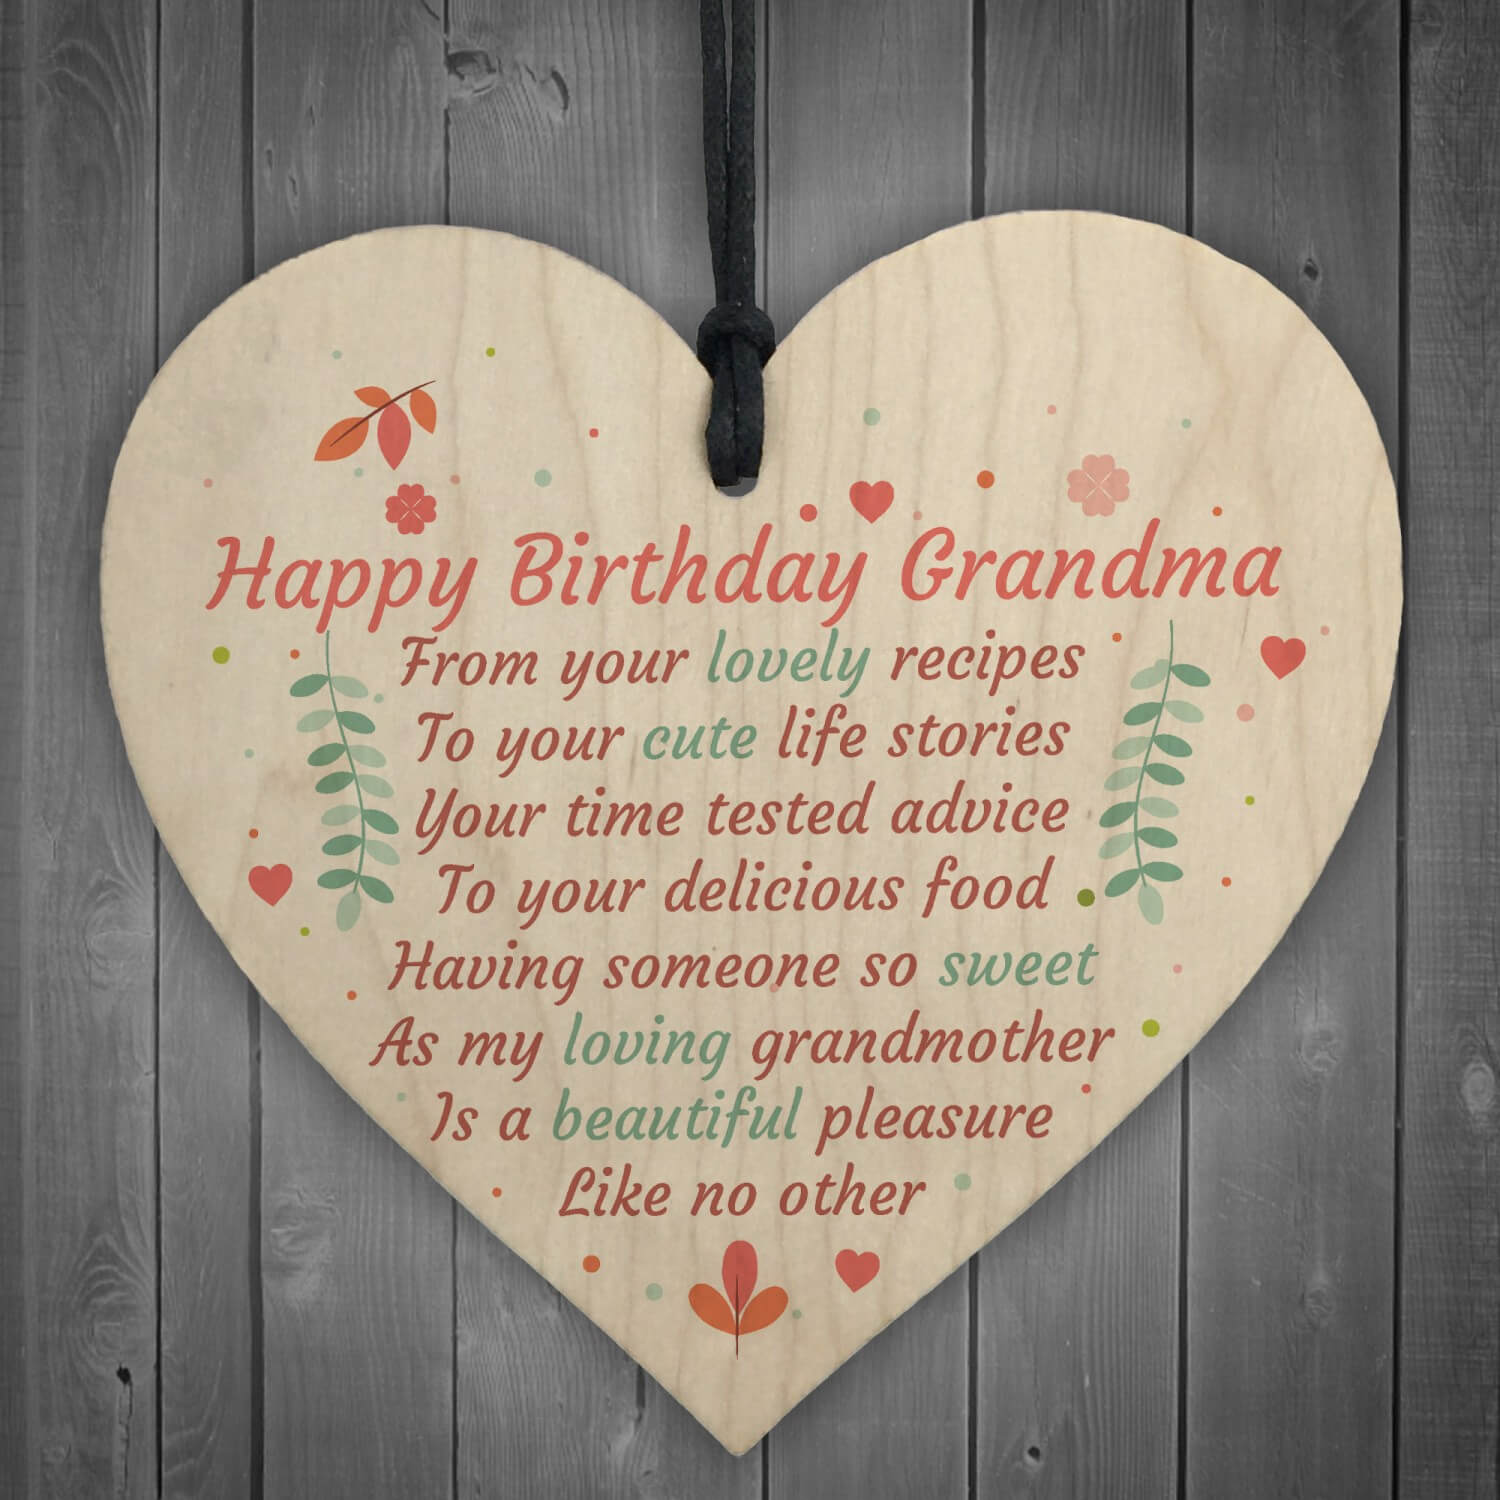 Happy Birthday Wishes on Heart Grandmother